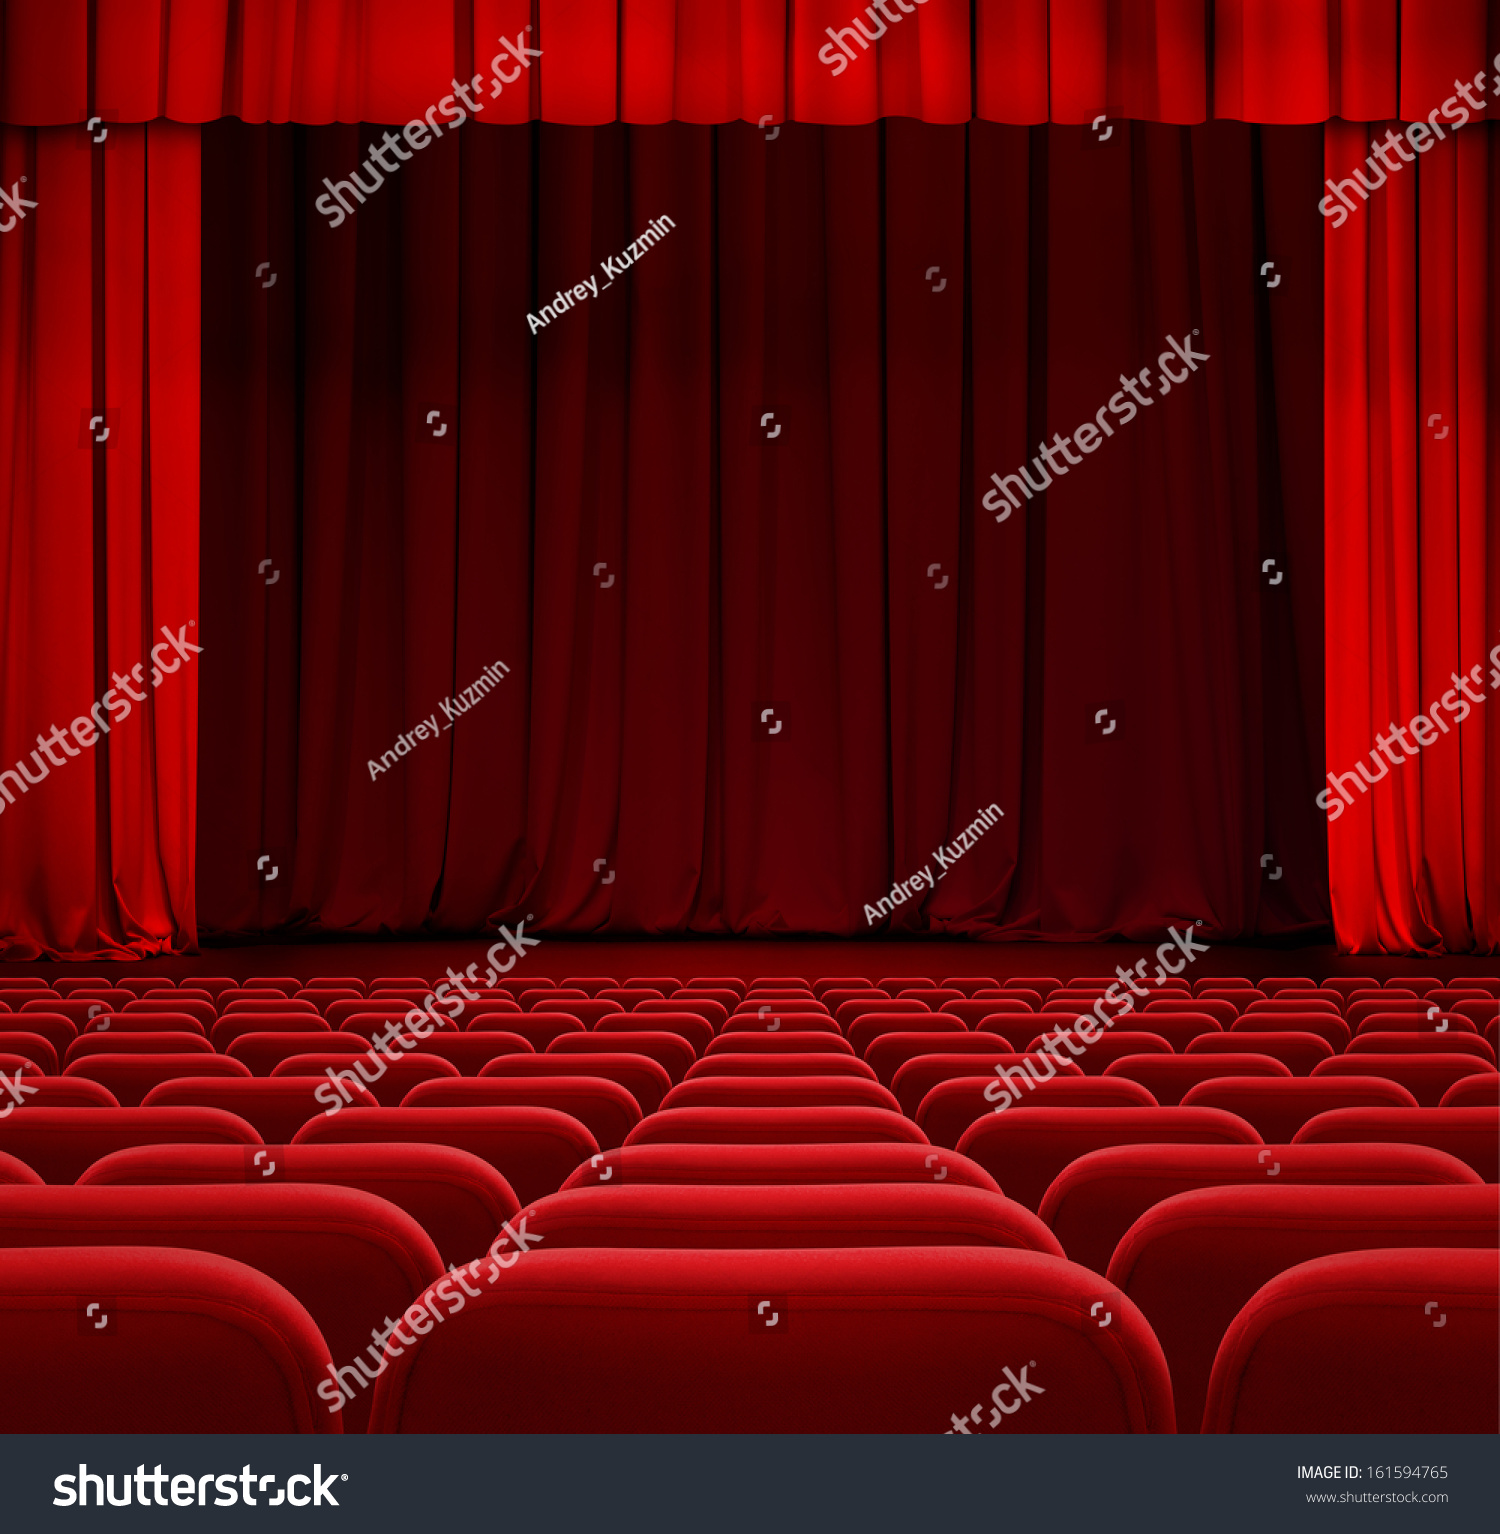 Closed theater curtains - Theater Or Cinema Curtain Or Drapes With Red Seats